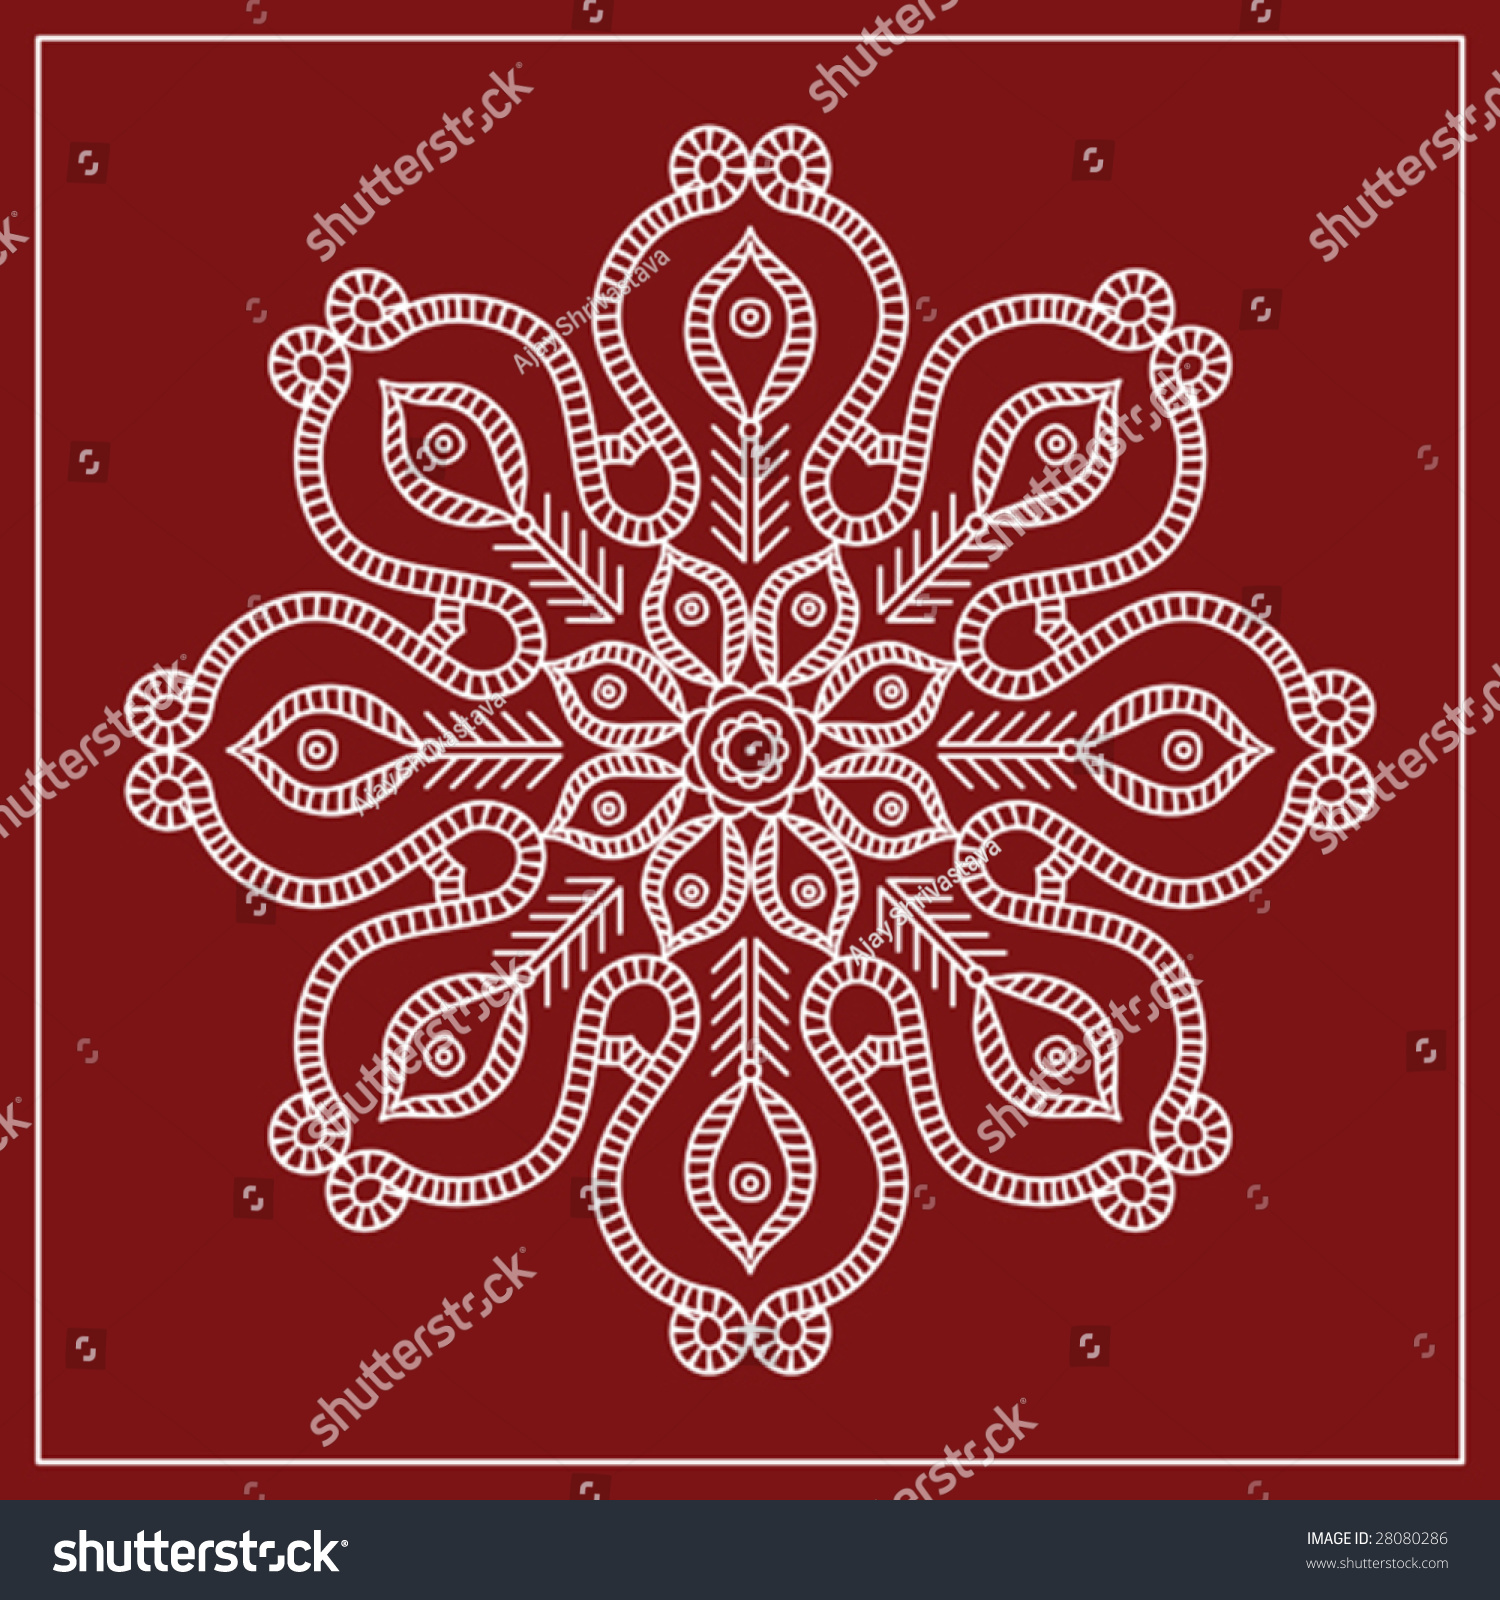 folk tribal designs motif wall painting stock vector illustration 28080286 shutterstock. Black Bedroom Furniture Sets. Home Design Ideas